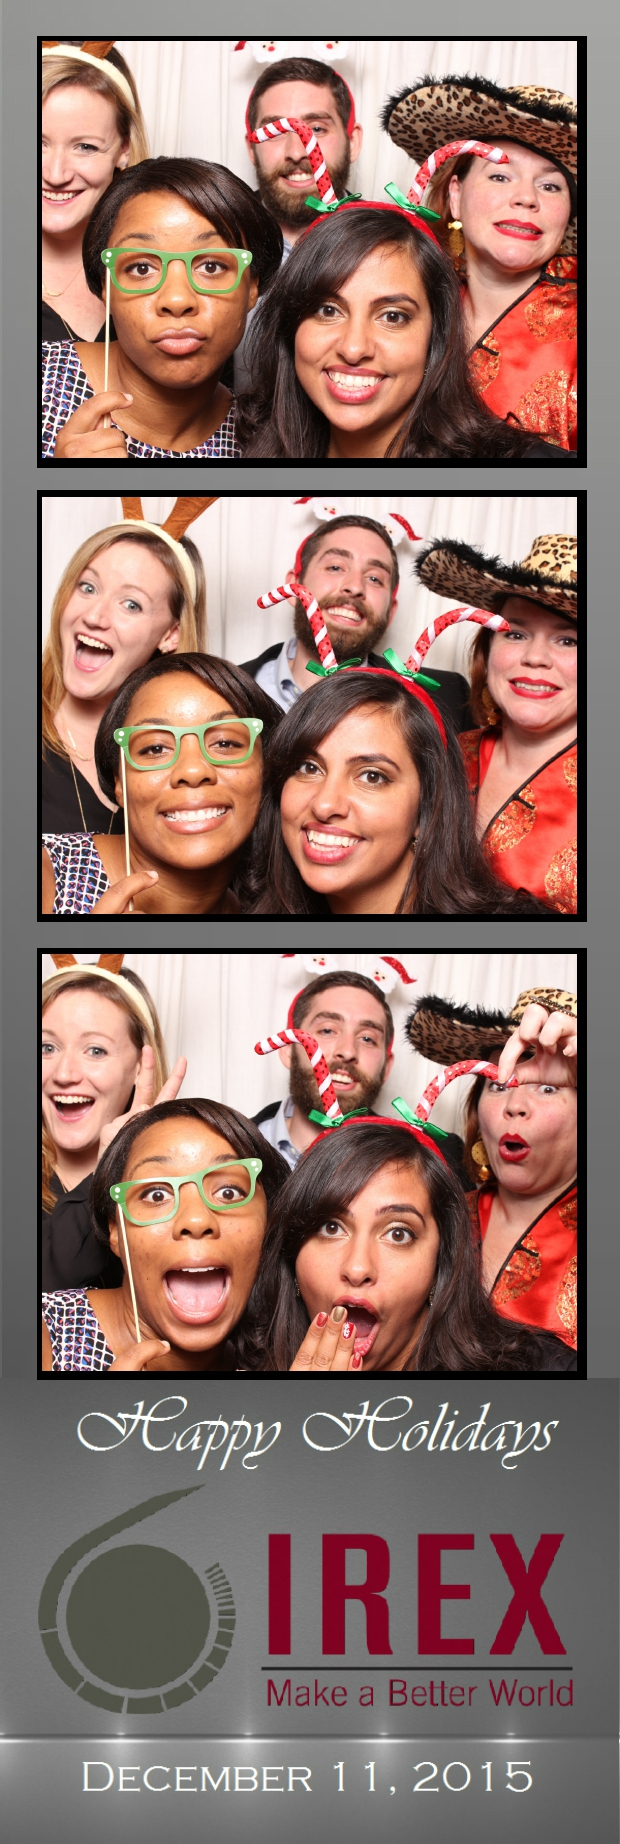 Guest House Events Photo Booth Strips IREX (45).jpg